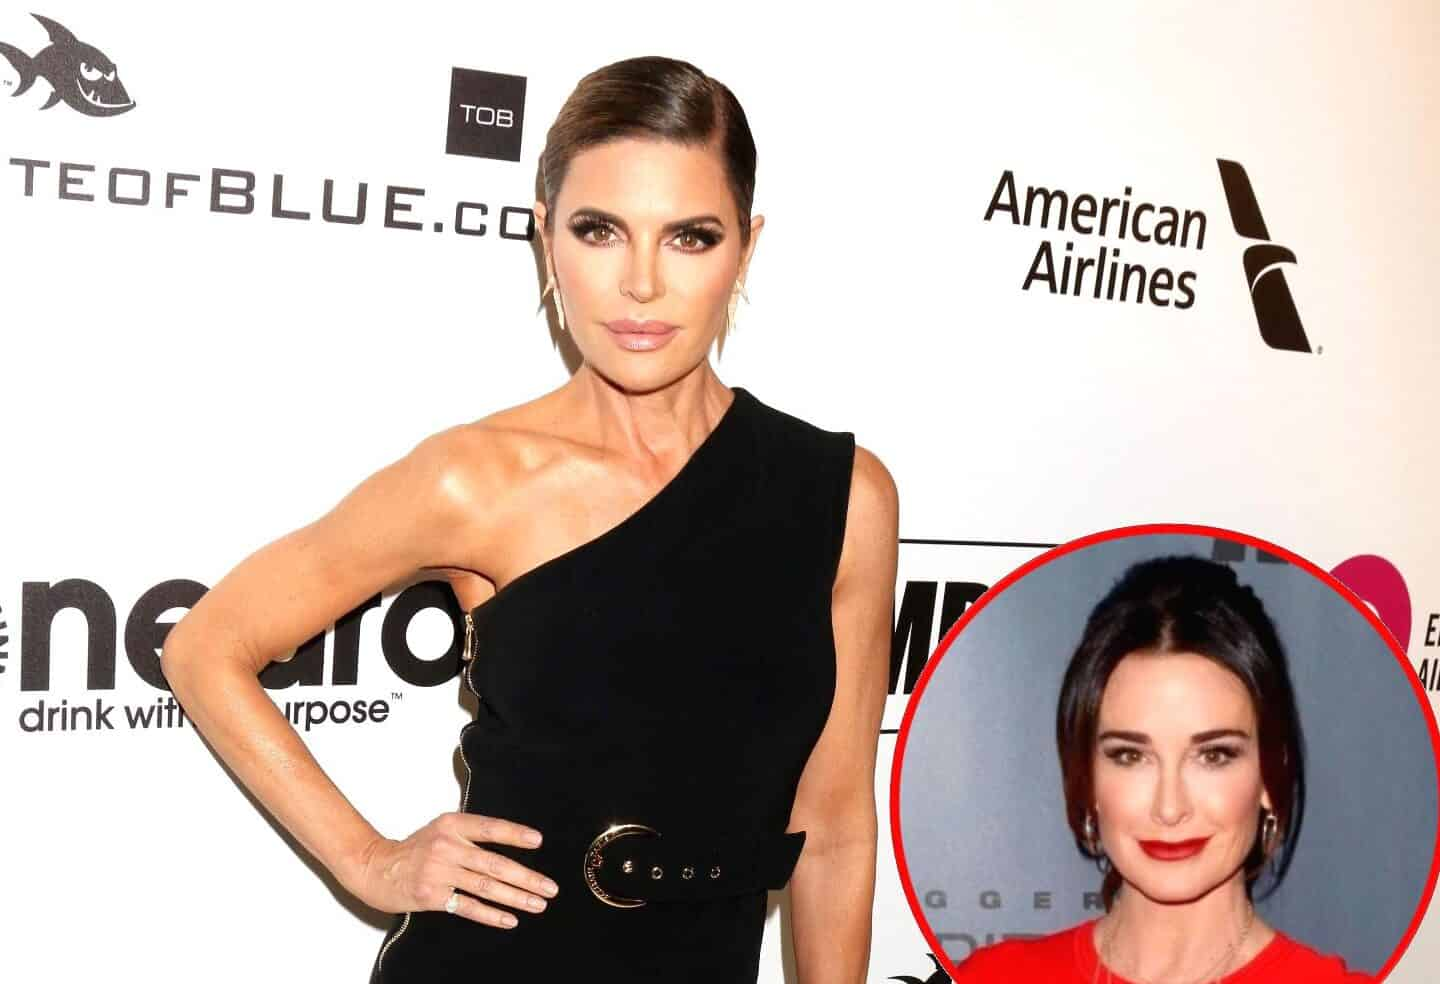 """Lisa Rinna Reveals Her One Major RHOBH Regret, Plus She Admits it Was """"Really Stupid"""" to Question Kyle Richards' Defense of Sister Kim"""